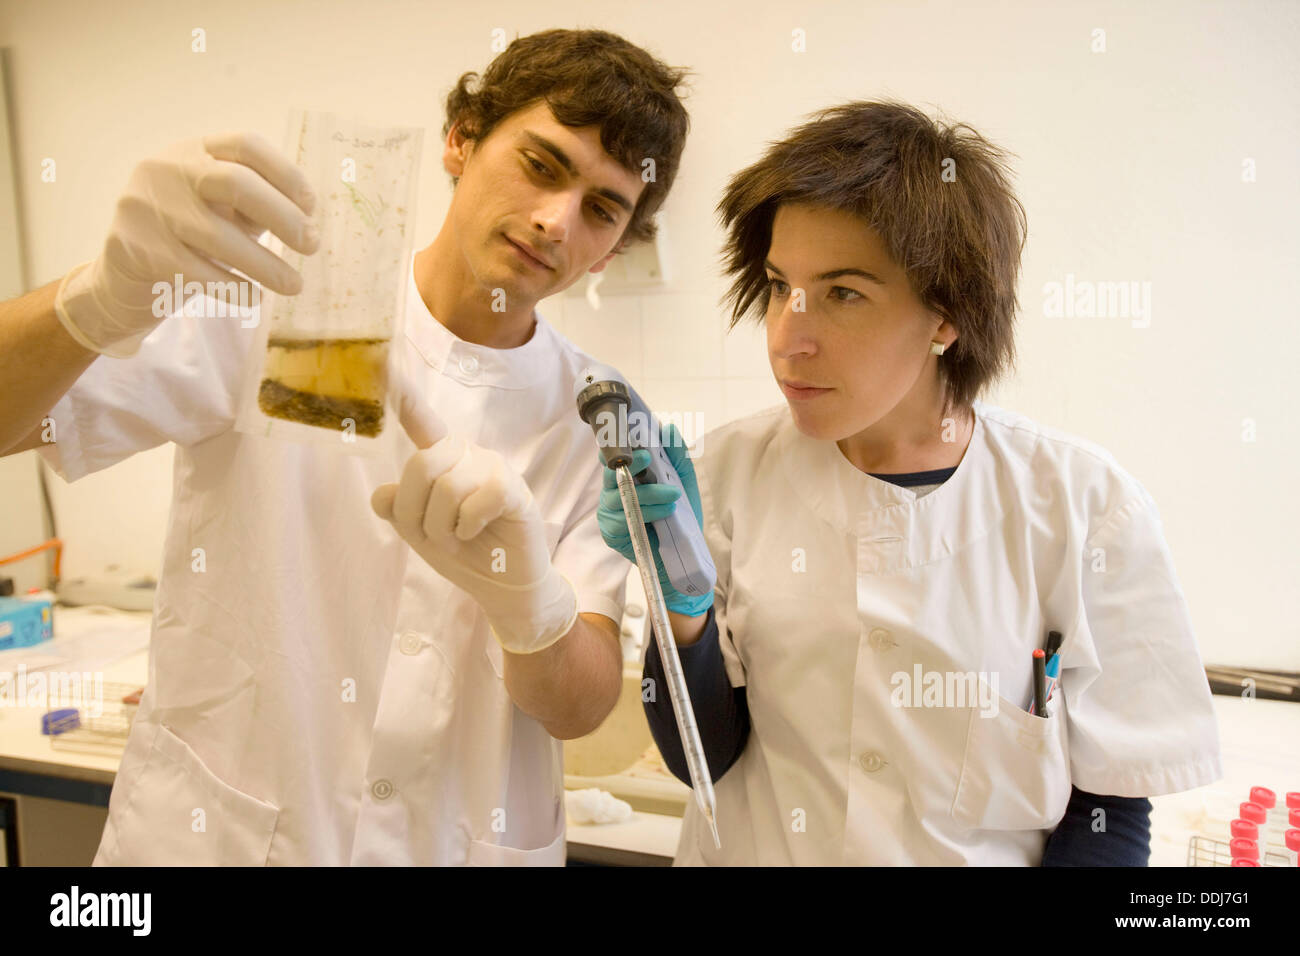 Homogenized sample for bacteria cultivation, Laboratory of Bacteriology, Departamento de Producción y Sanidad Animal, Neiker - Stock Image